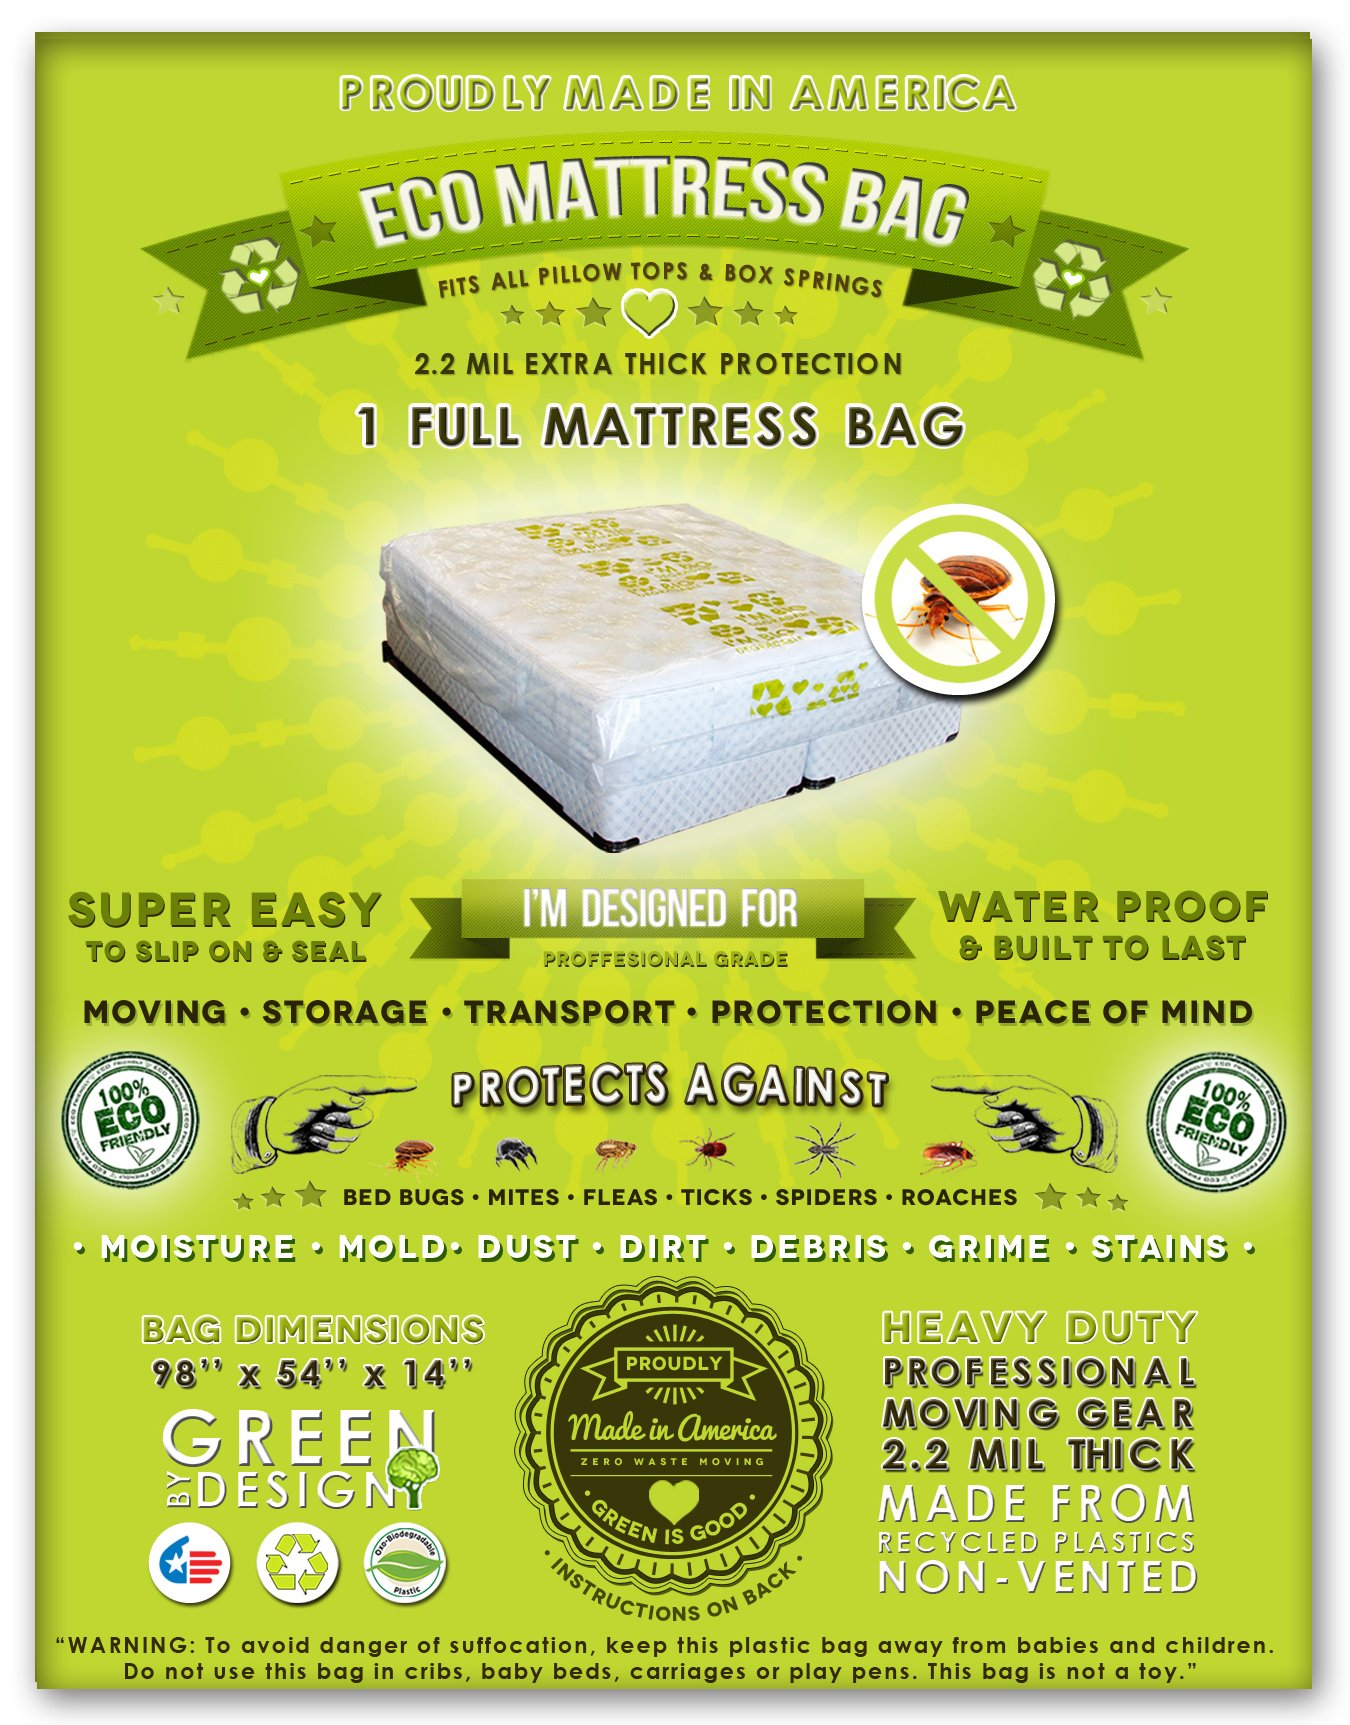 2 Full Size Mattress Bags. Fits All Pillow Tops and Box Springs. Ideal for Moving, Storage and Protecting Your Mattress. Heavy Duty Professional Grade. Easy to Slip on and Seal. Sleep with Peace of Mind and Don't Let the Bed Bugs Bite. Protect Your Invest